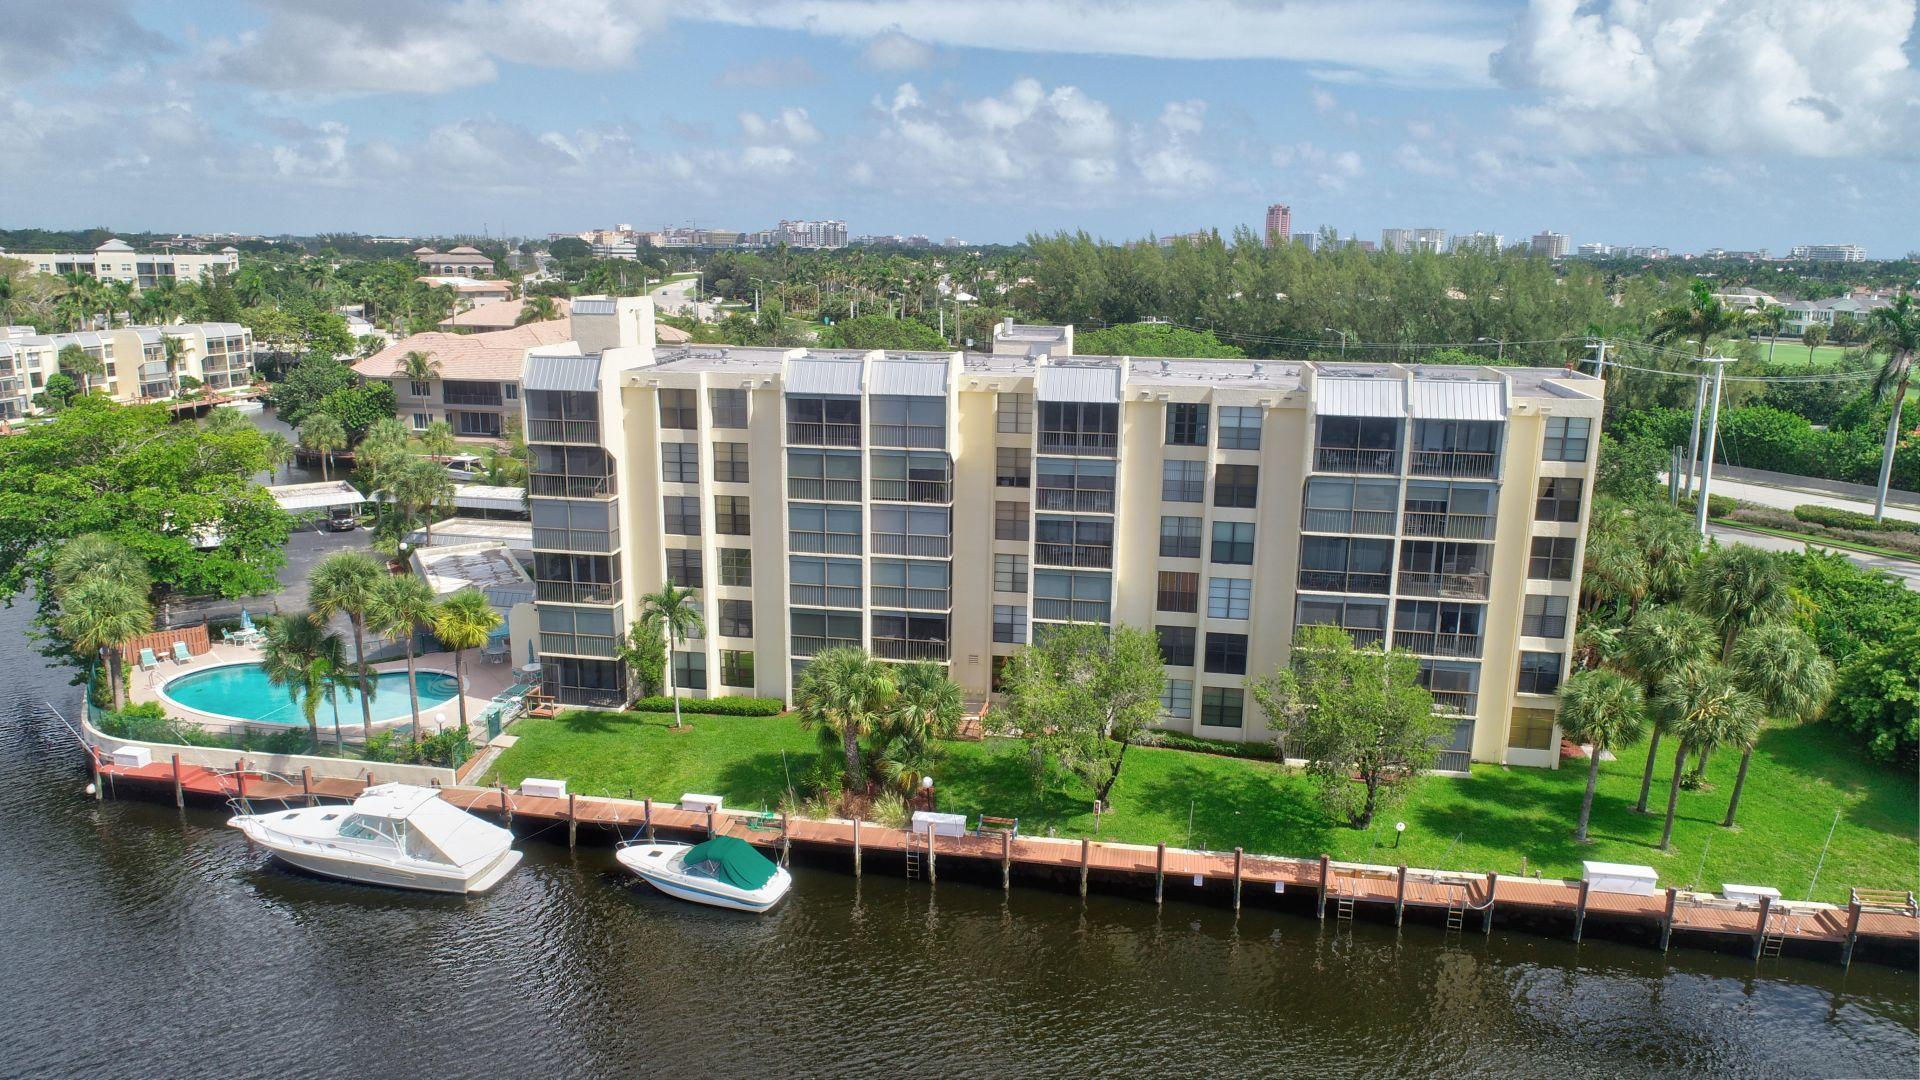 Boca Bayou Ph 1, 2 Thru 5 & 7 Condos 22 Royal-palm Way